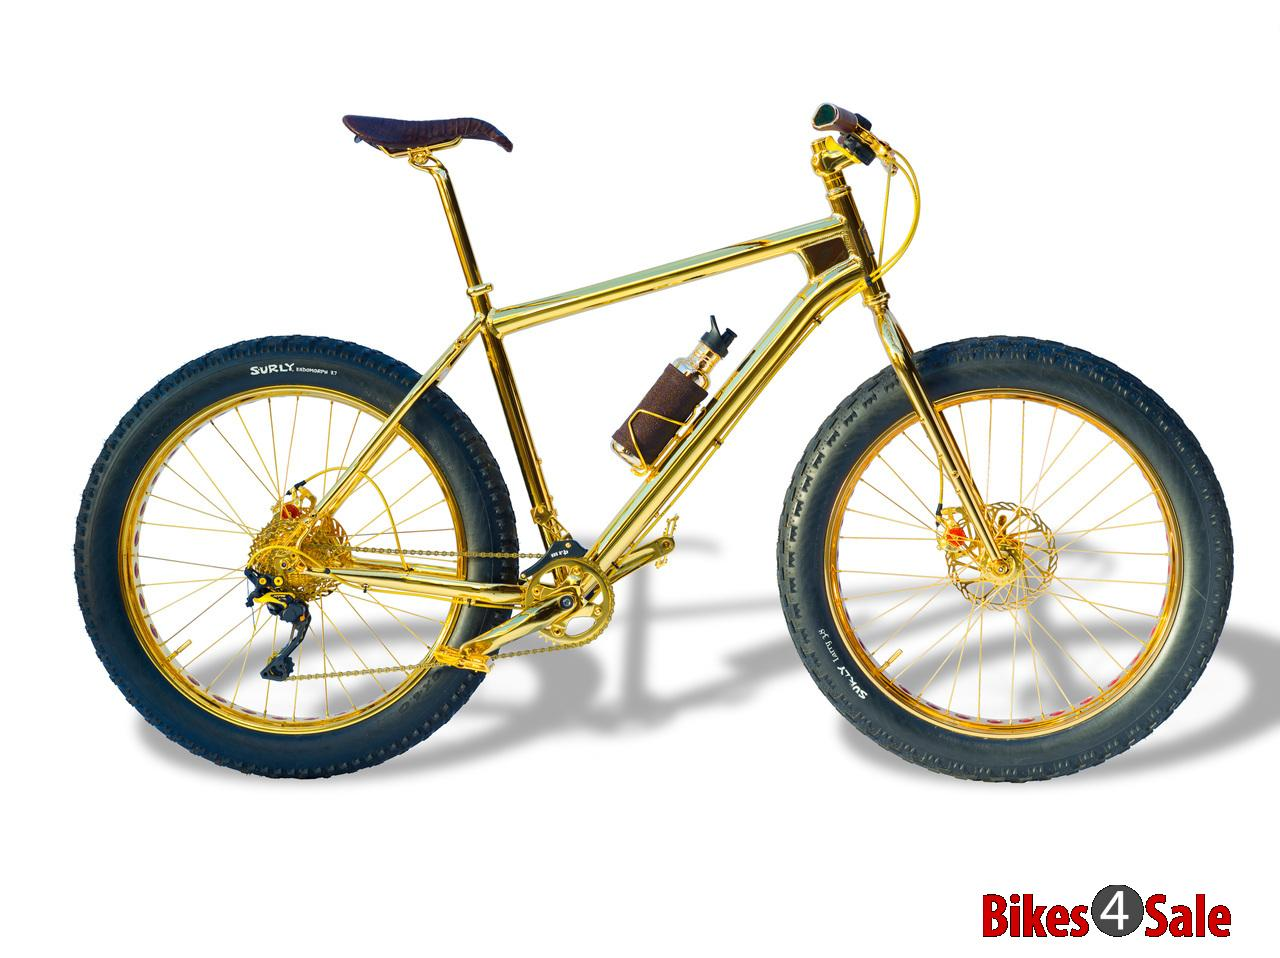 24k Gold Extreme Mountain Bike 1